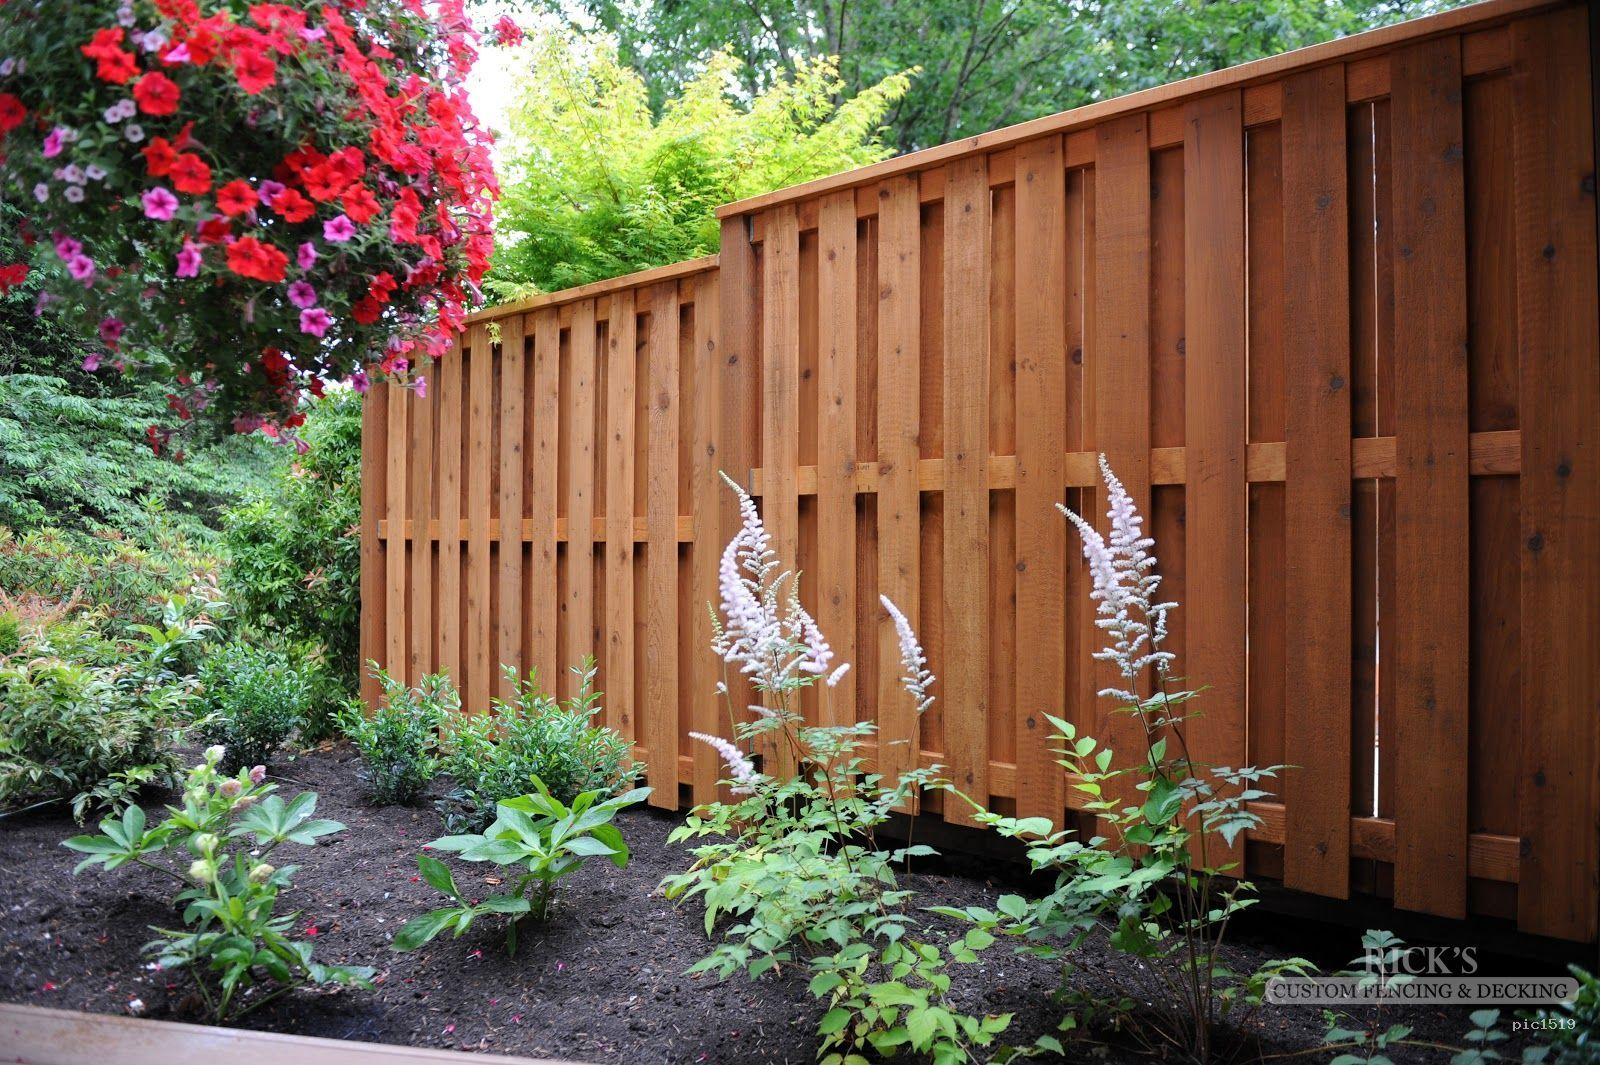 Good Neighbor Fence From Rick 39 S Custom Fencing Decking